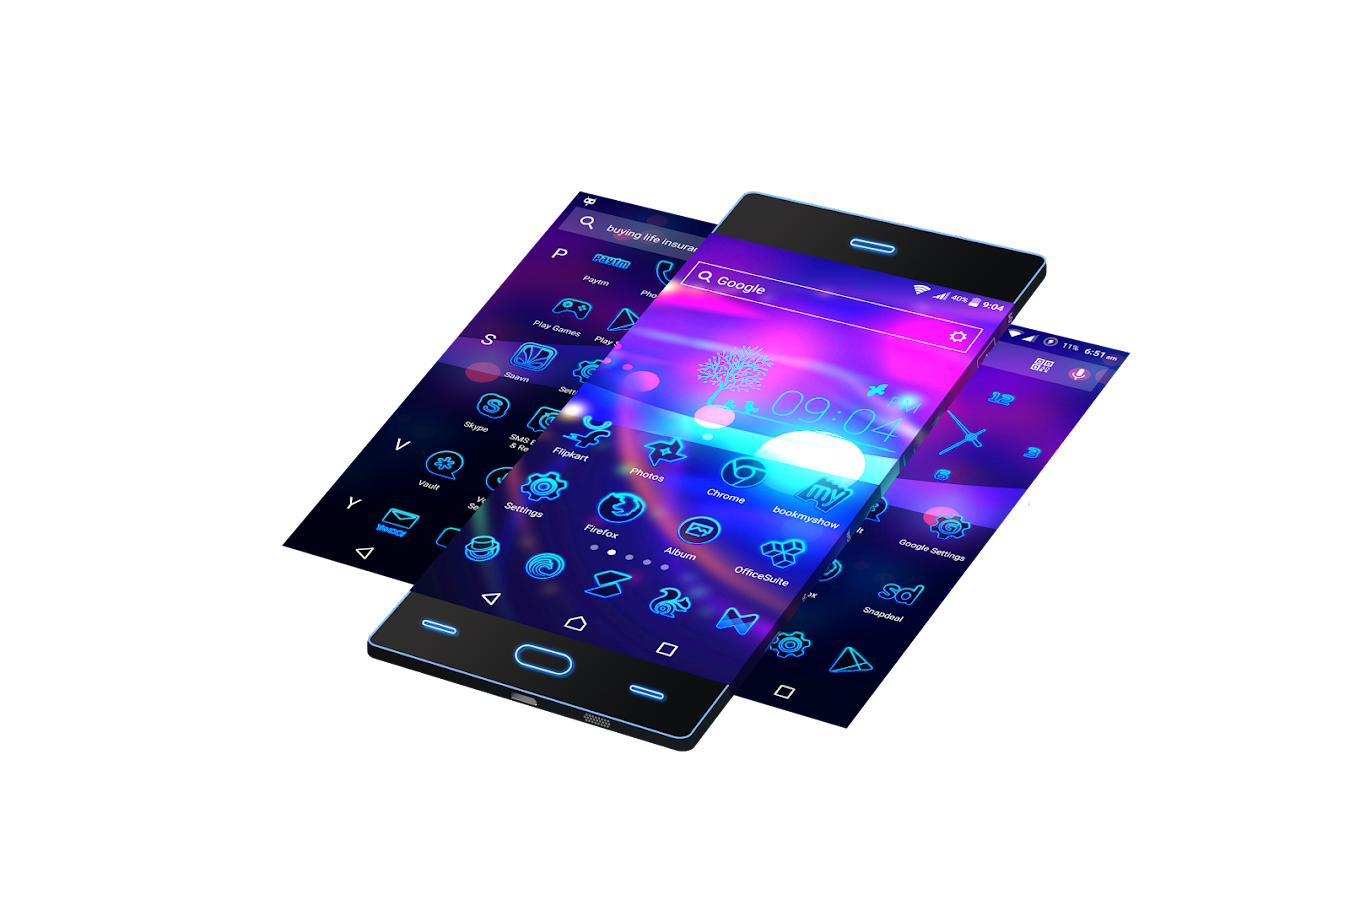 Google themes for android mobiles - Neon 2 Hd Wallpapers Theme Screenshot